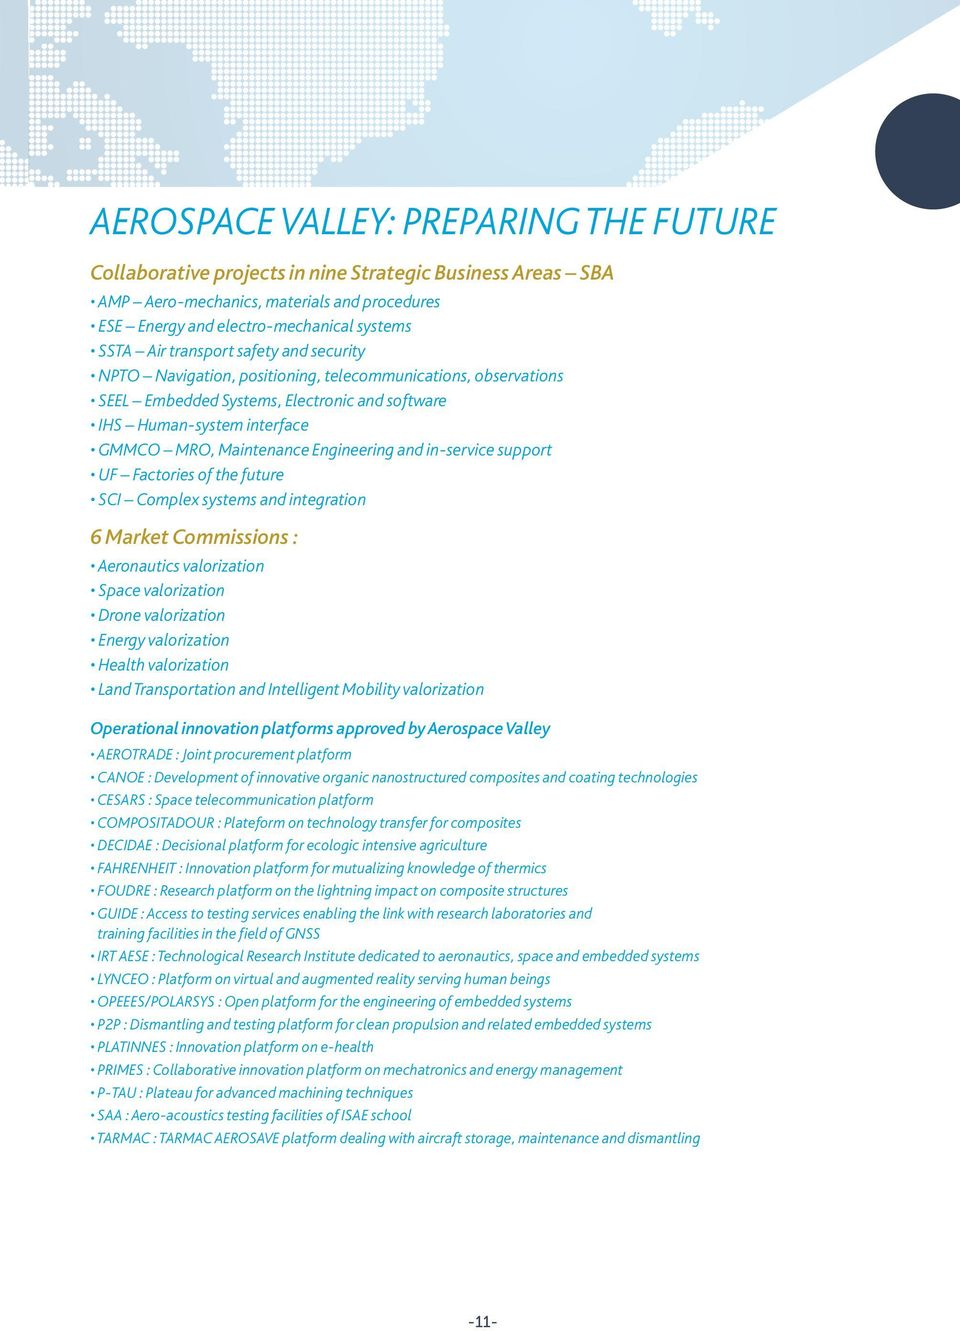 Engineering and in-service support UF Factories of the future SCI Complex systems and integration 6 Market Commissions : Aeronautics valorization Space valorization Drone valorization Energy